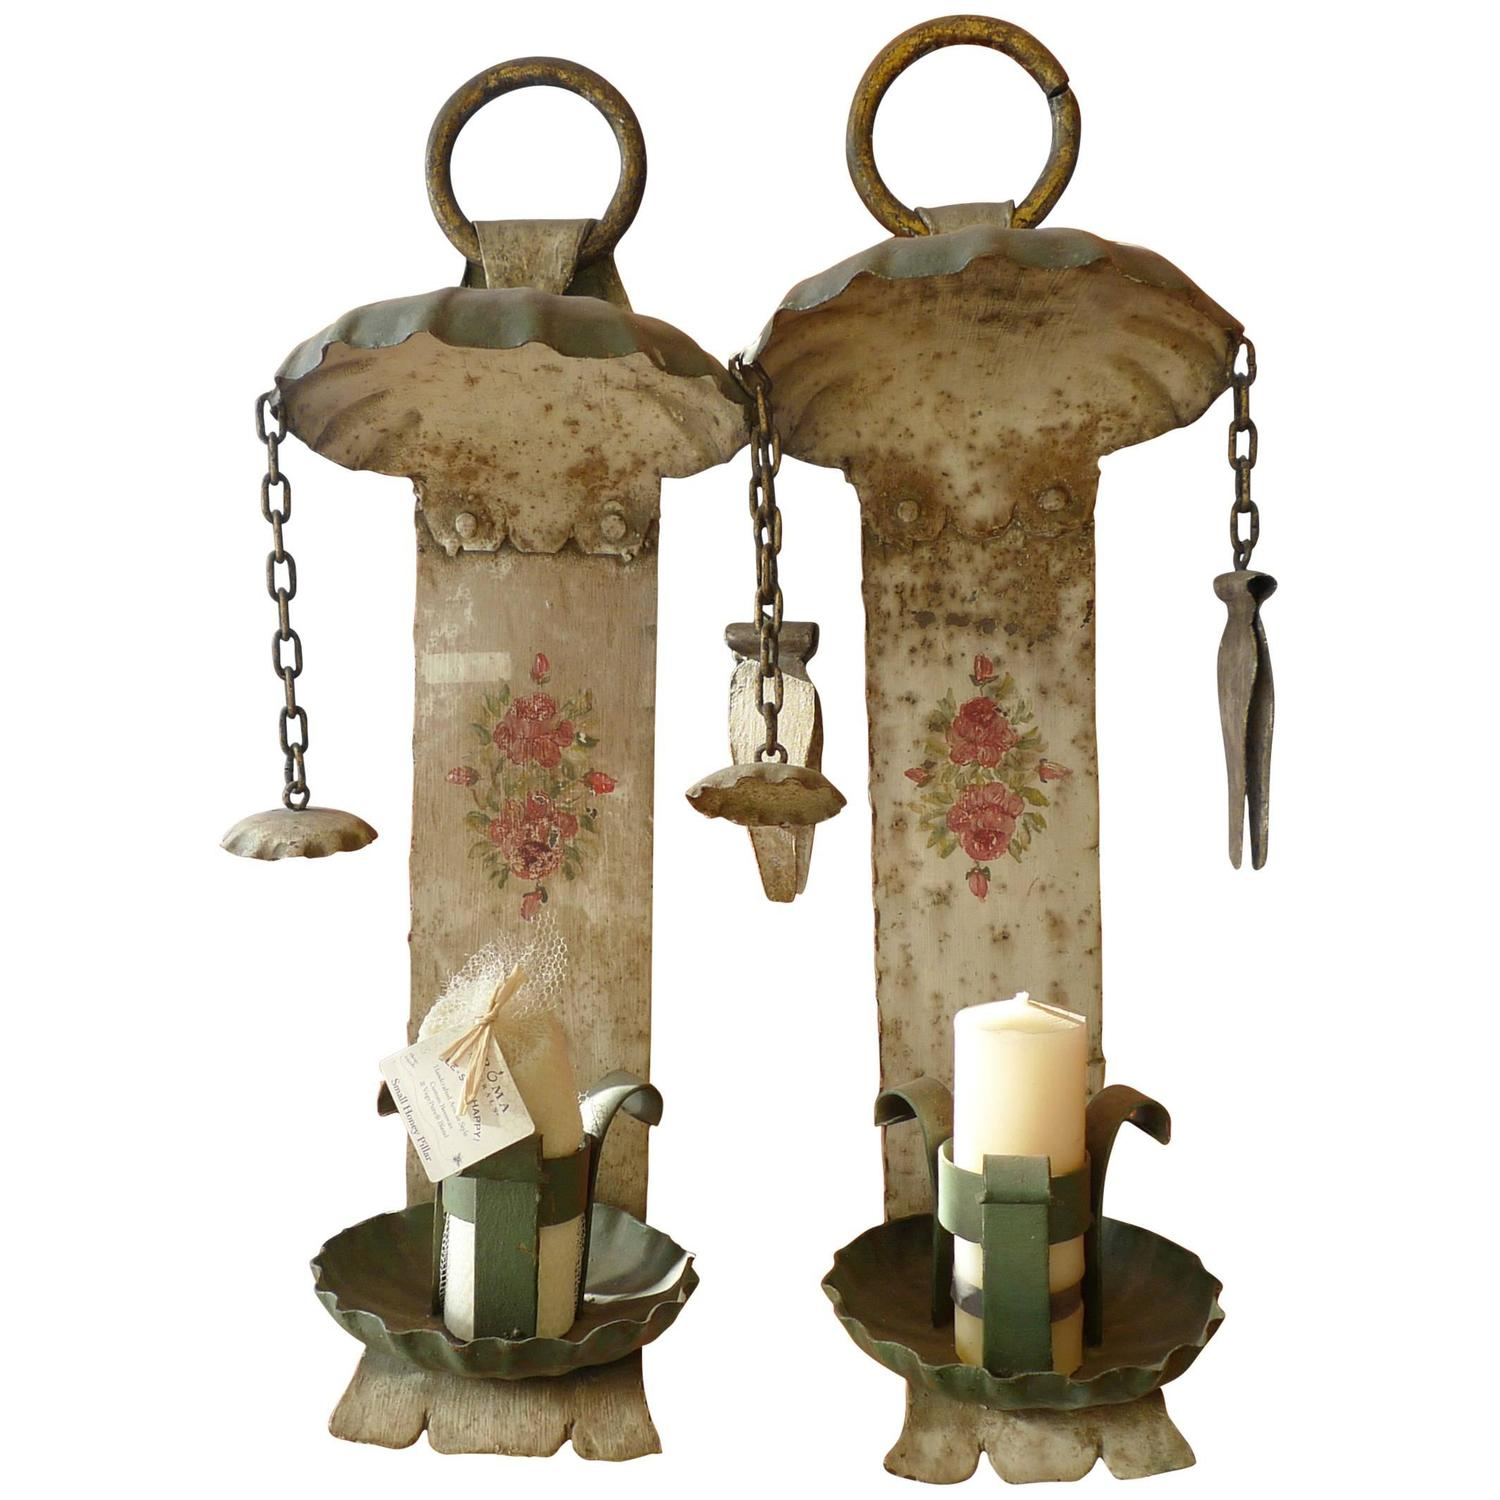 Wall Sconces En Espanol : Two Metal Spanish 19th Century Painted Wall Sconce For Sale at 1stdibs